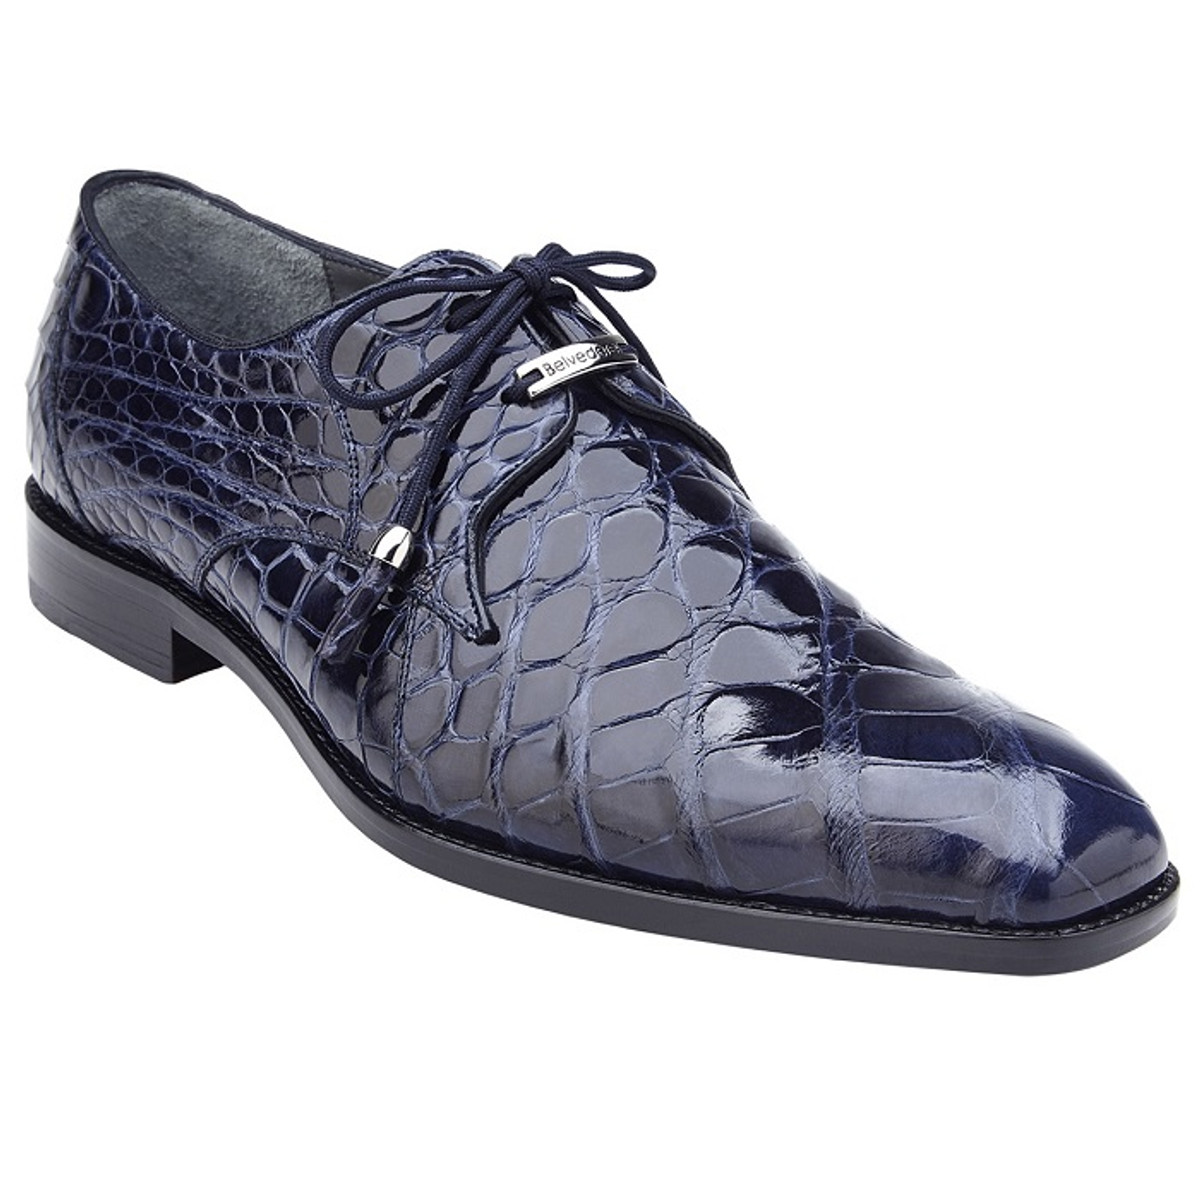 Belvedere Alligator Shoes Mens Navy Clean Toe Style Lago